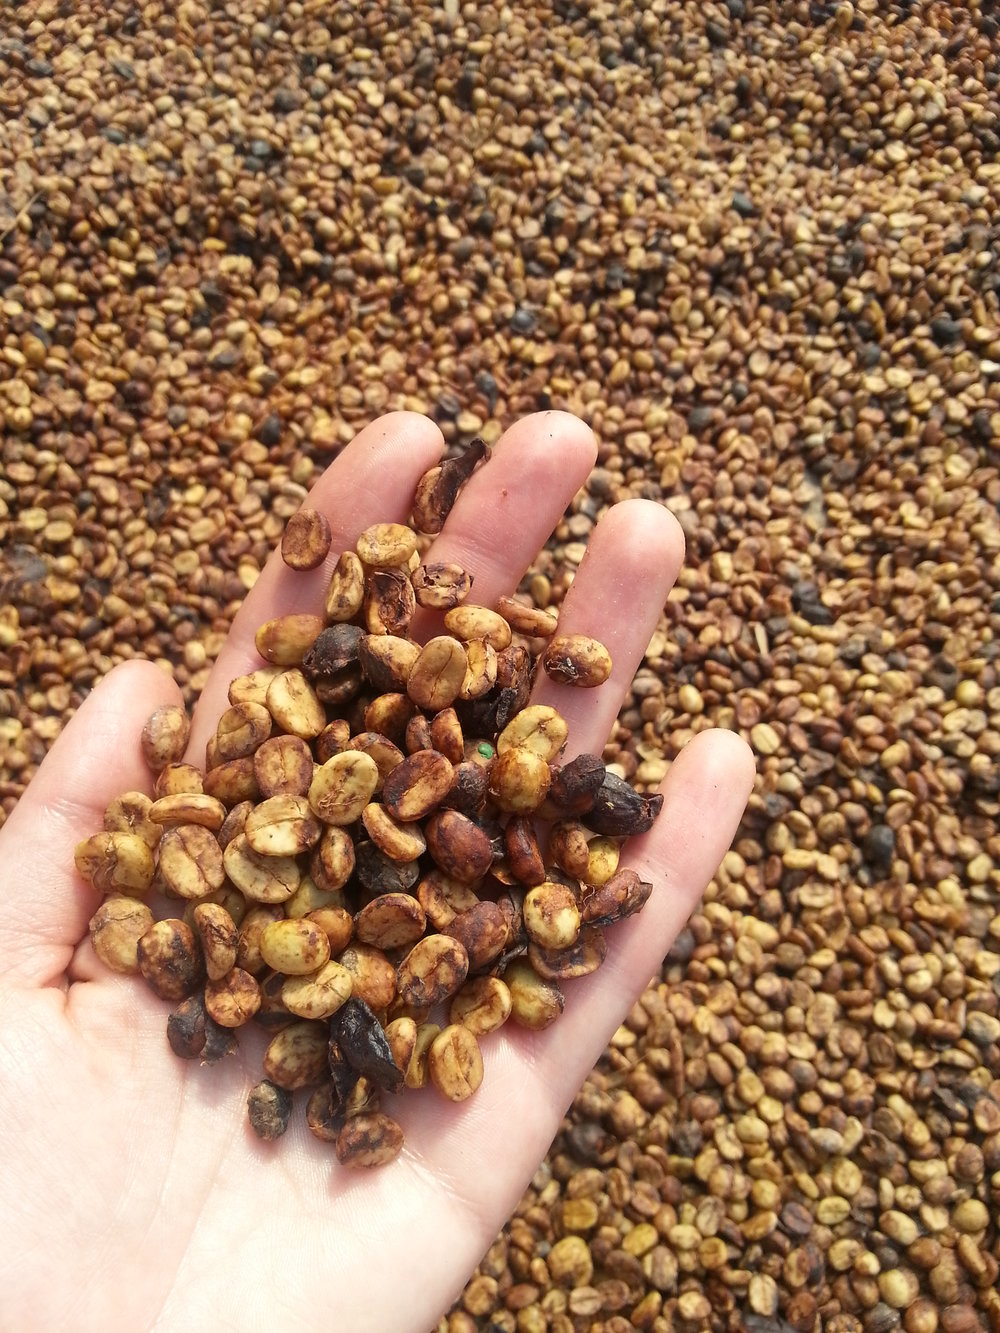 An example of honey processed coffee during the drying stage.